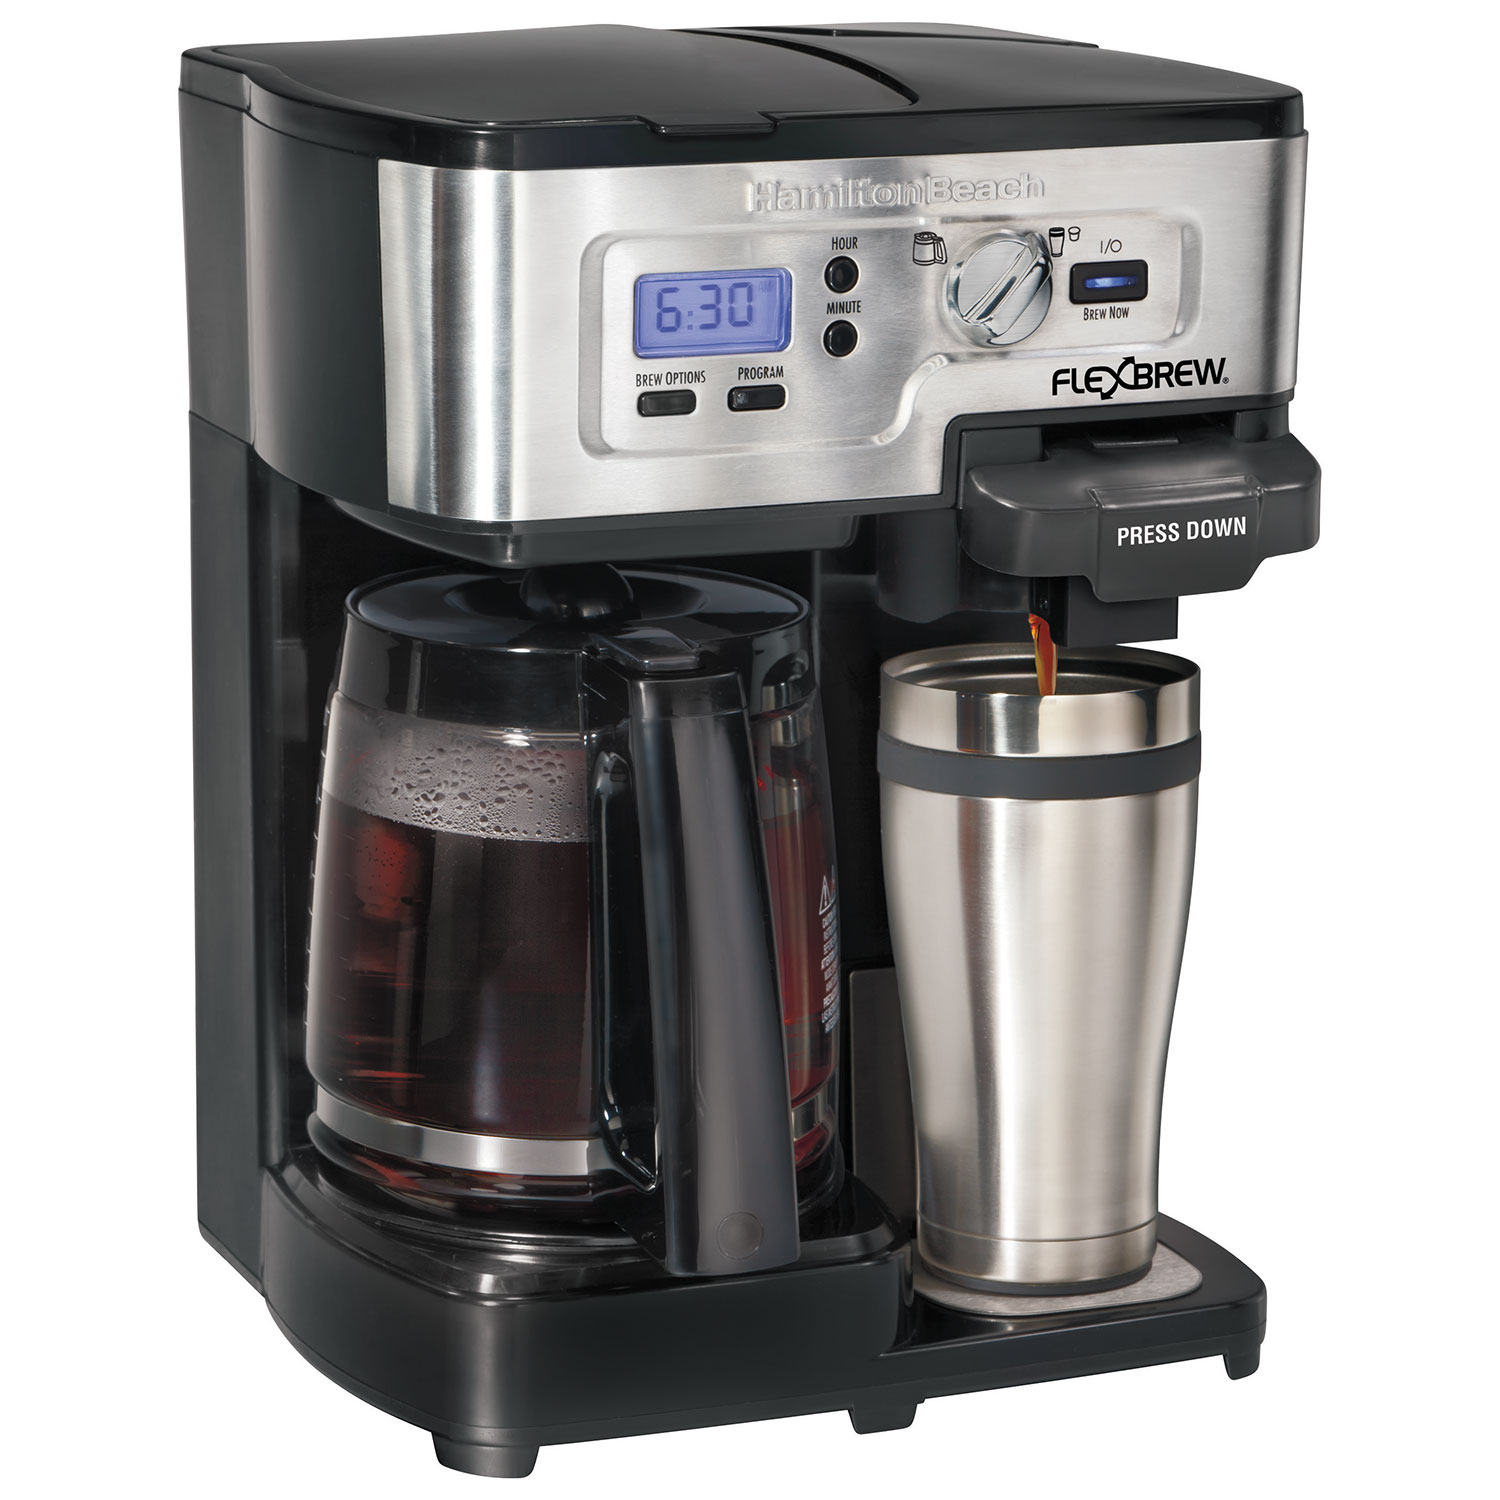 Hamilton Beach 12 Cup Multi Functional Coffee Maker 49983c Black